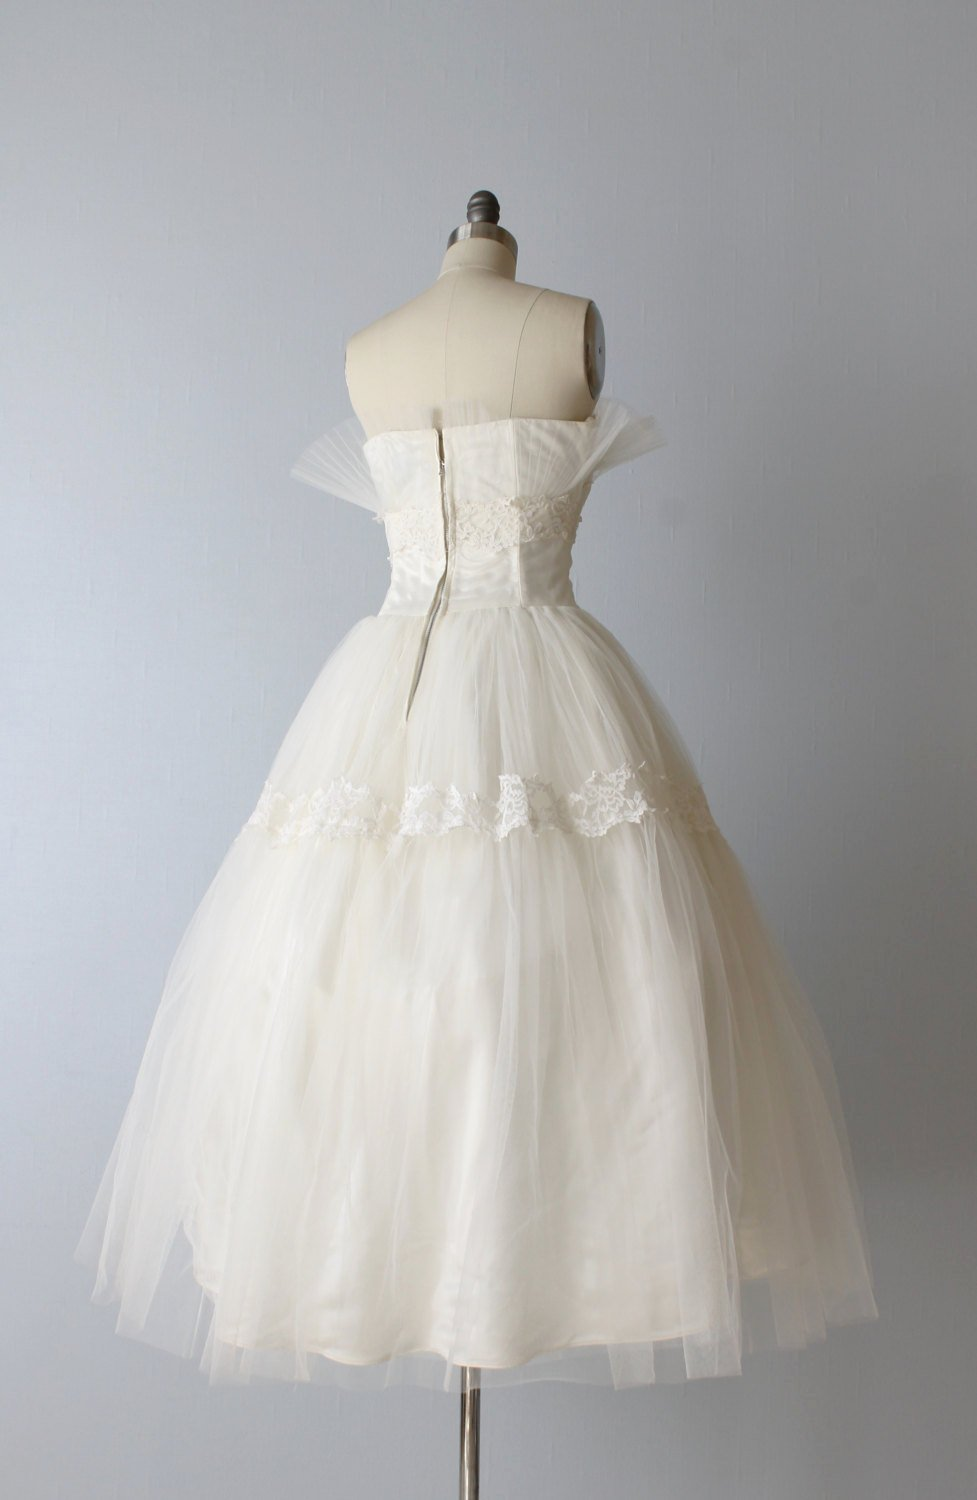 1950s Tulle Wedding Dress from The Vintage Mistress